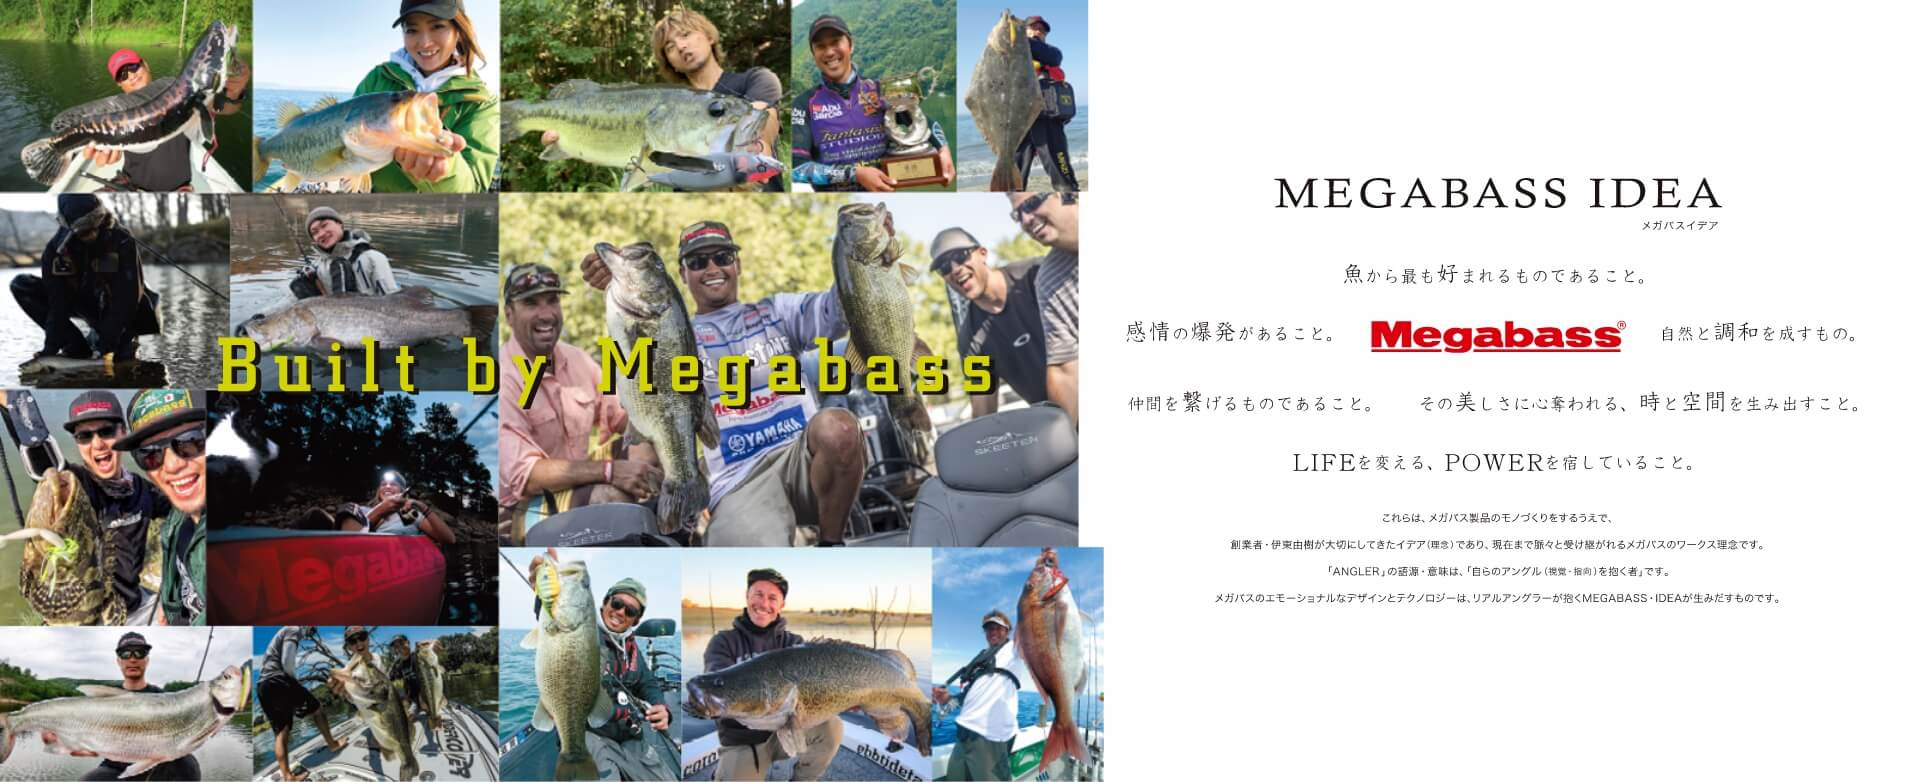 MEGABASS IDEA